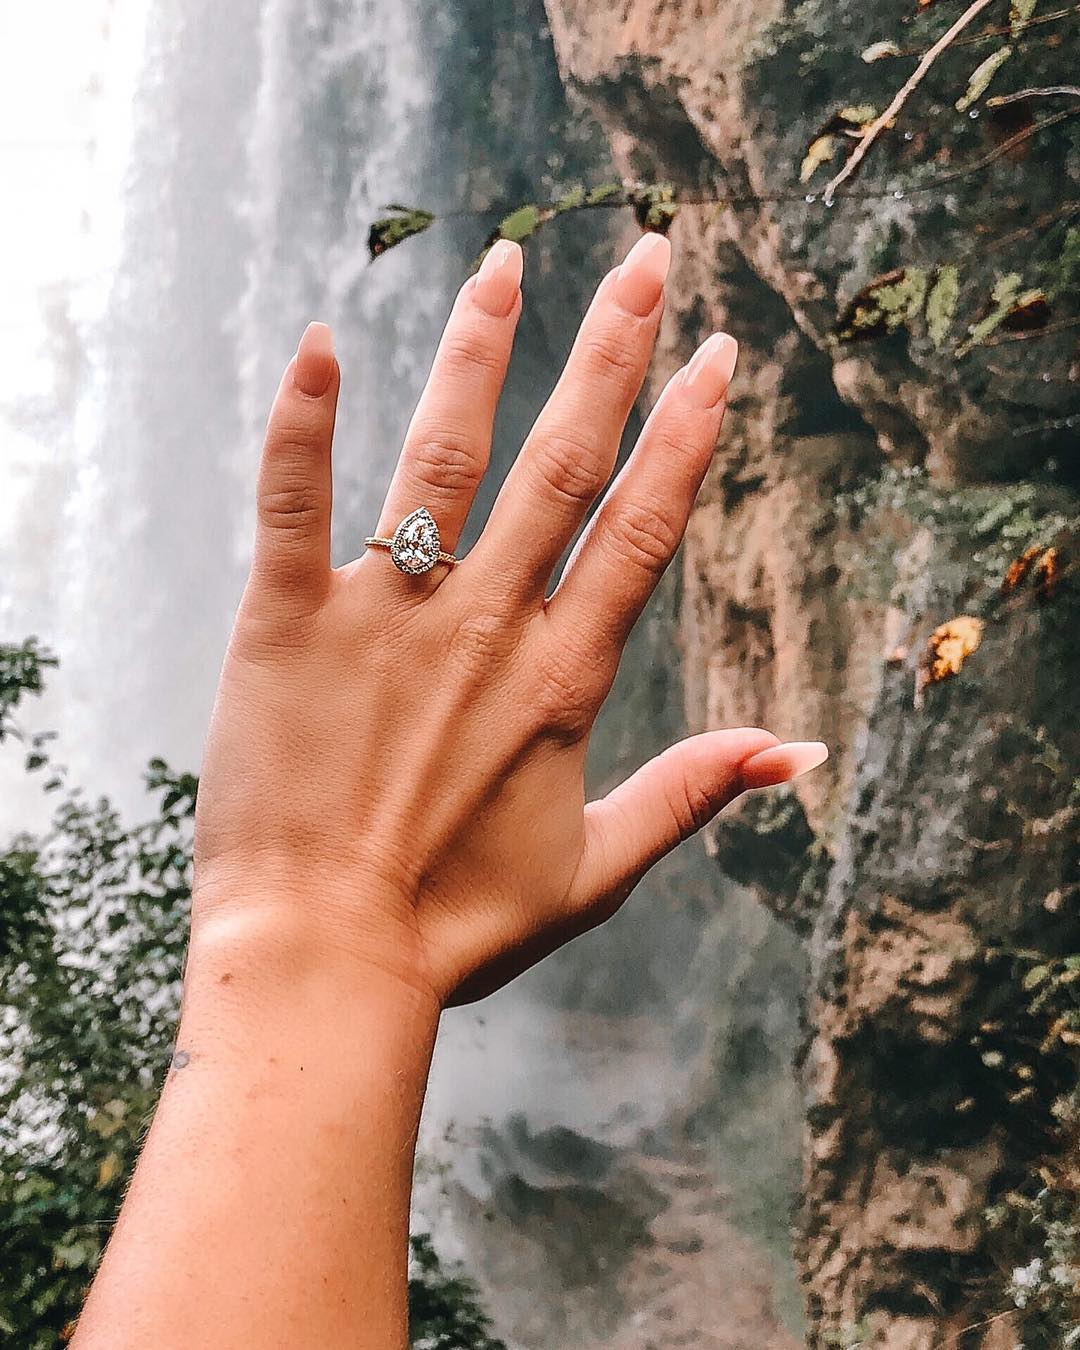 brides-flaunting-engagement-rings-waterfall